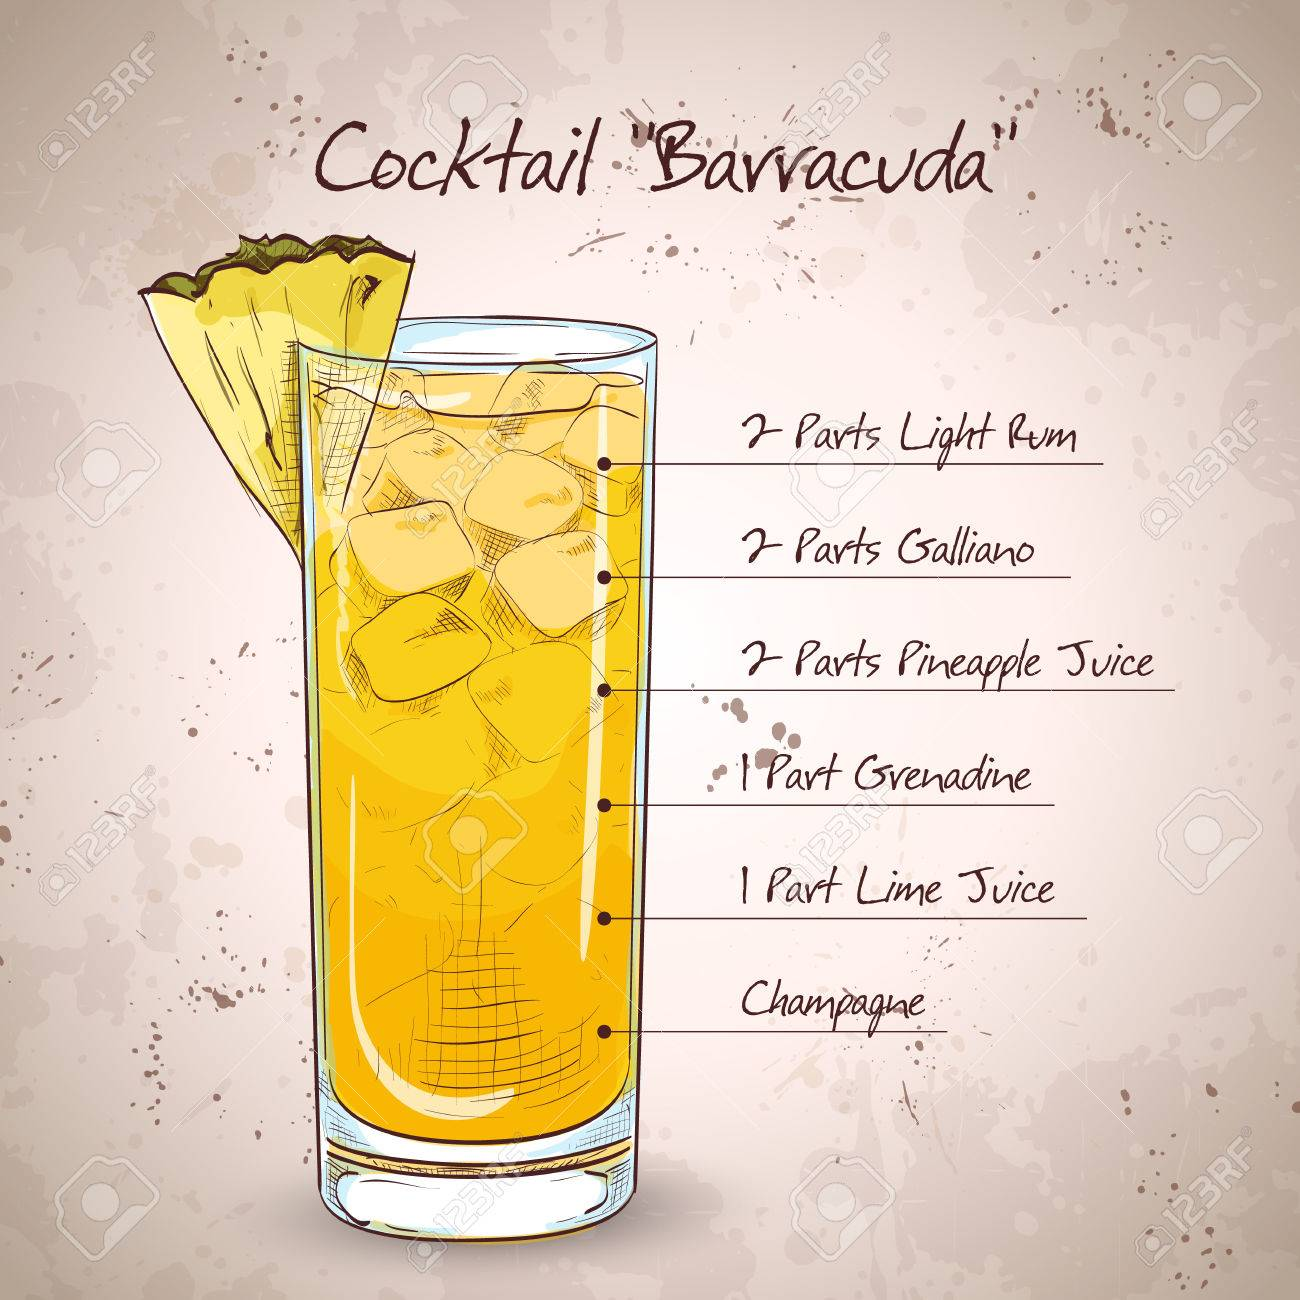 Hard Drink Cocktail Barracuda With Gold Rum Galliano Pineapple